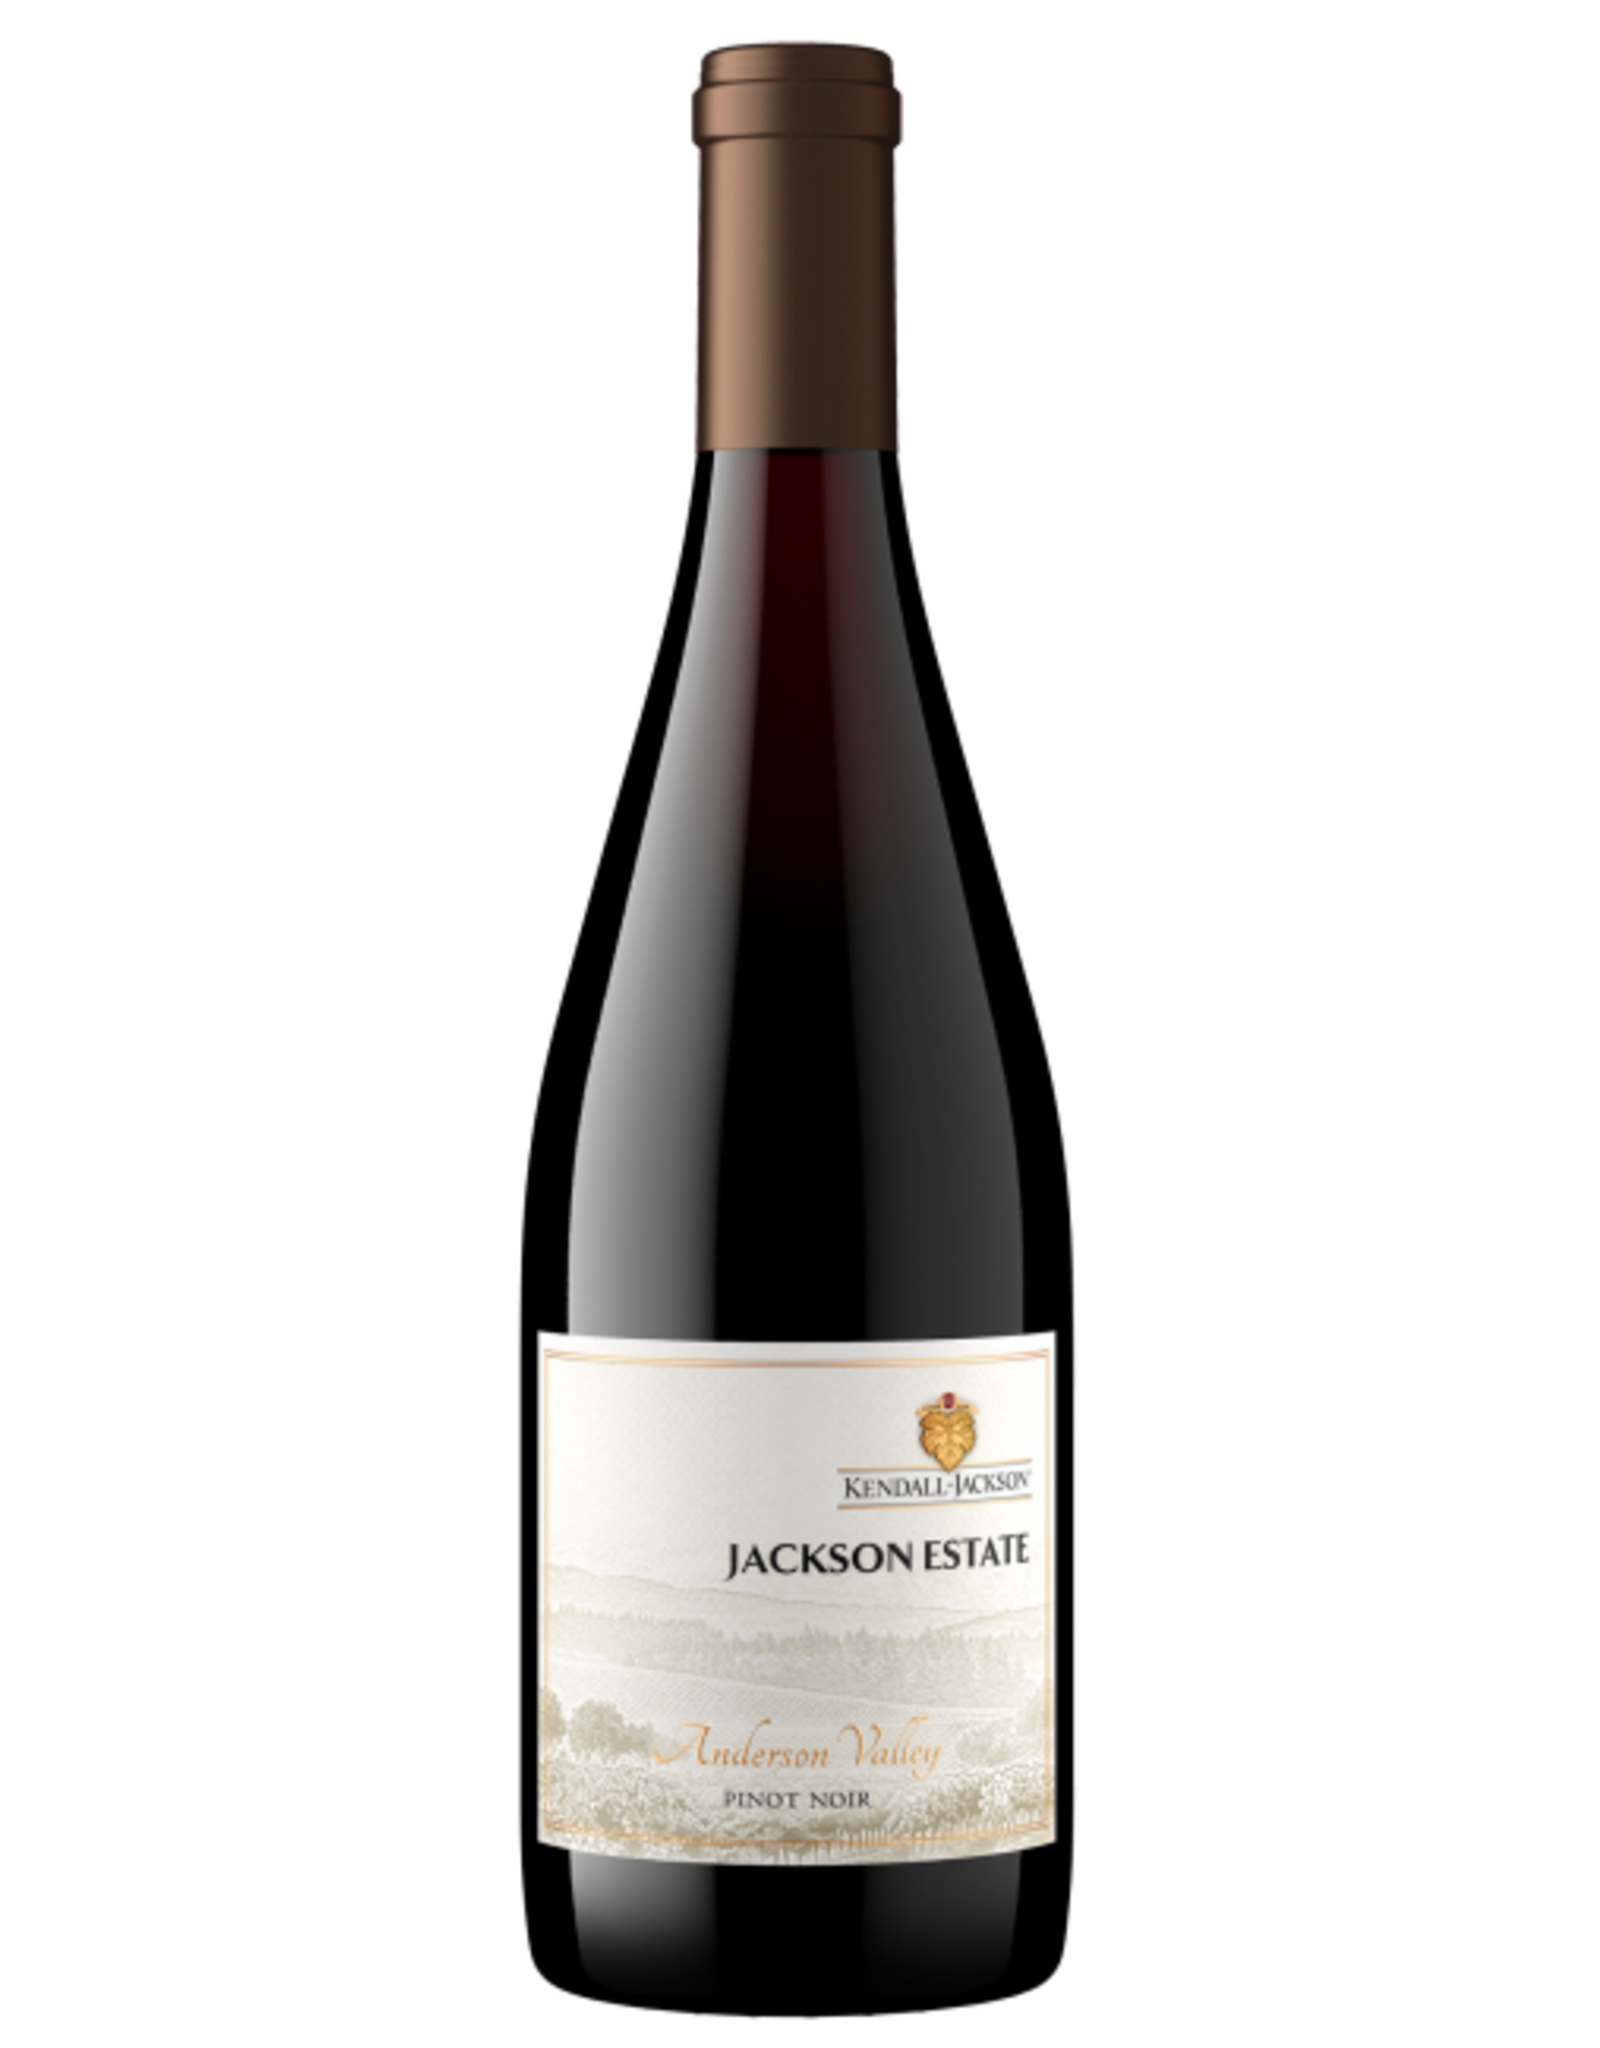 Jackson Estate Pinot Noir 2016